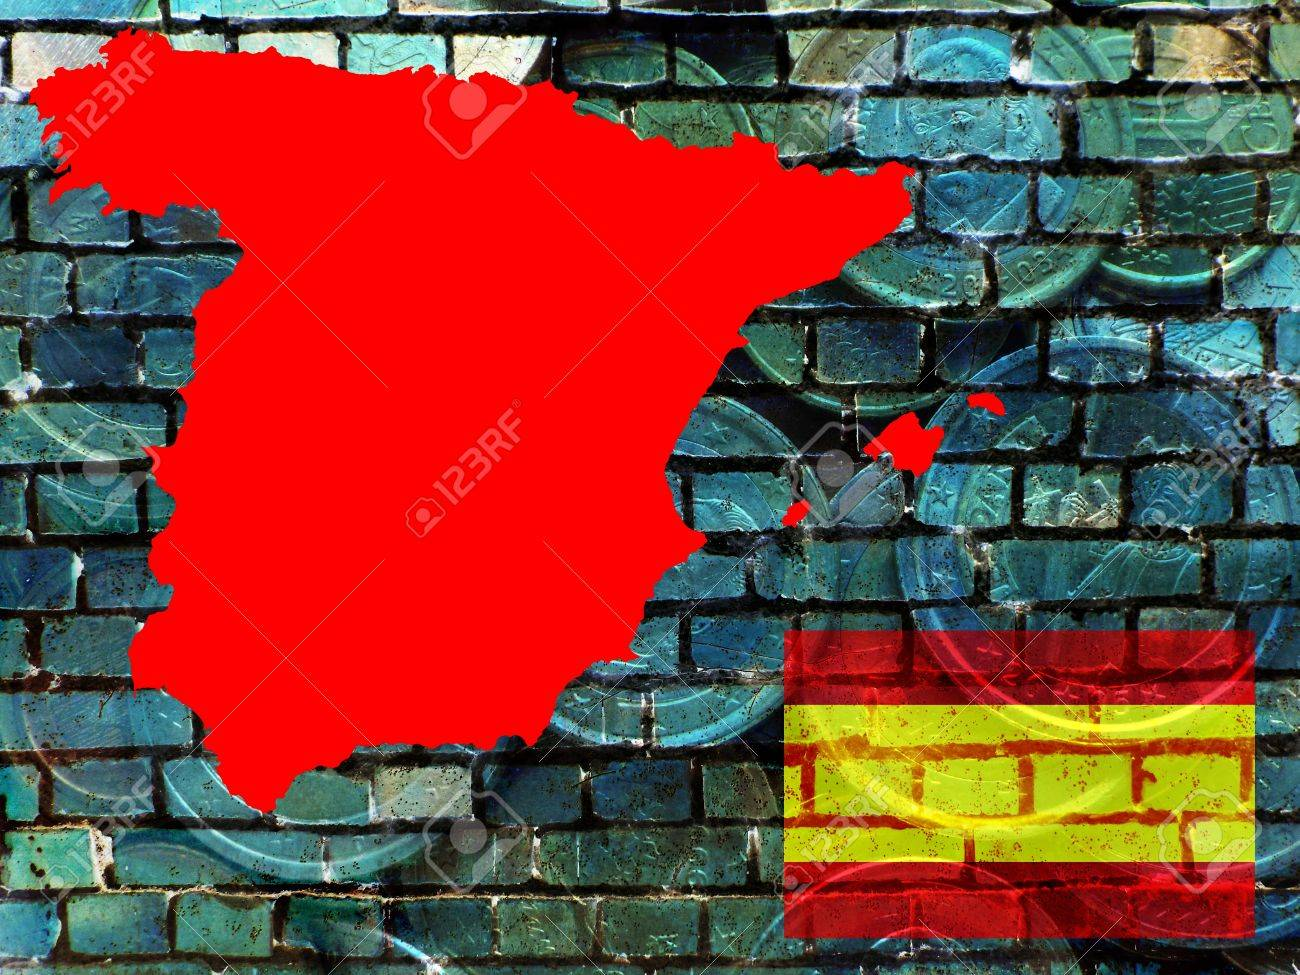 Spain and the EU - financial problems - The red map of Spain is projected on a bluish brick wall. Right below the national flag. Translucent: Euro coins. - 60581388